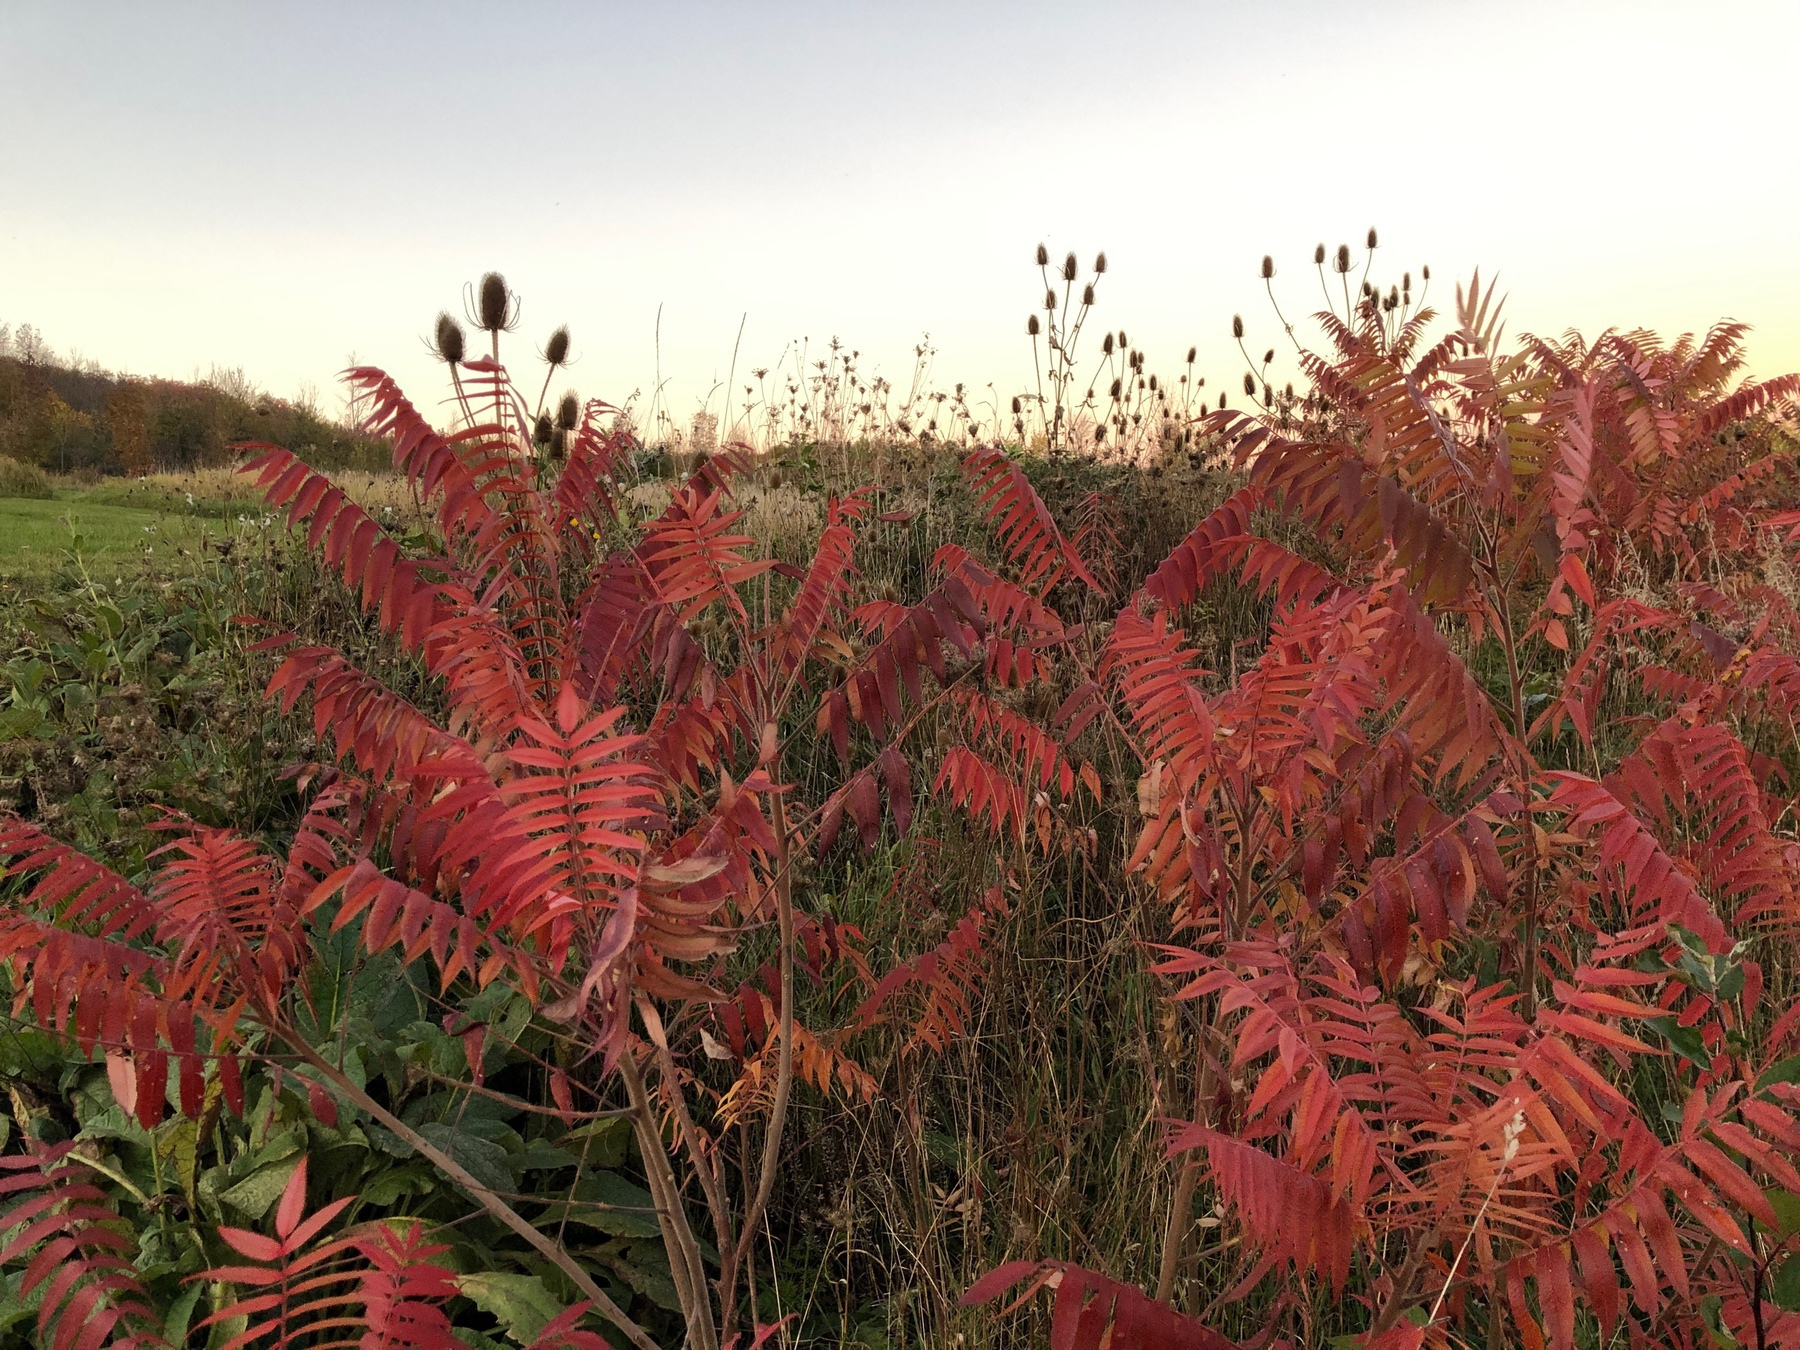 several sumac trees with red leaves